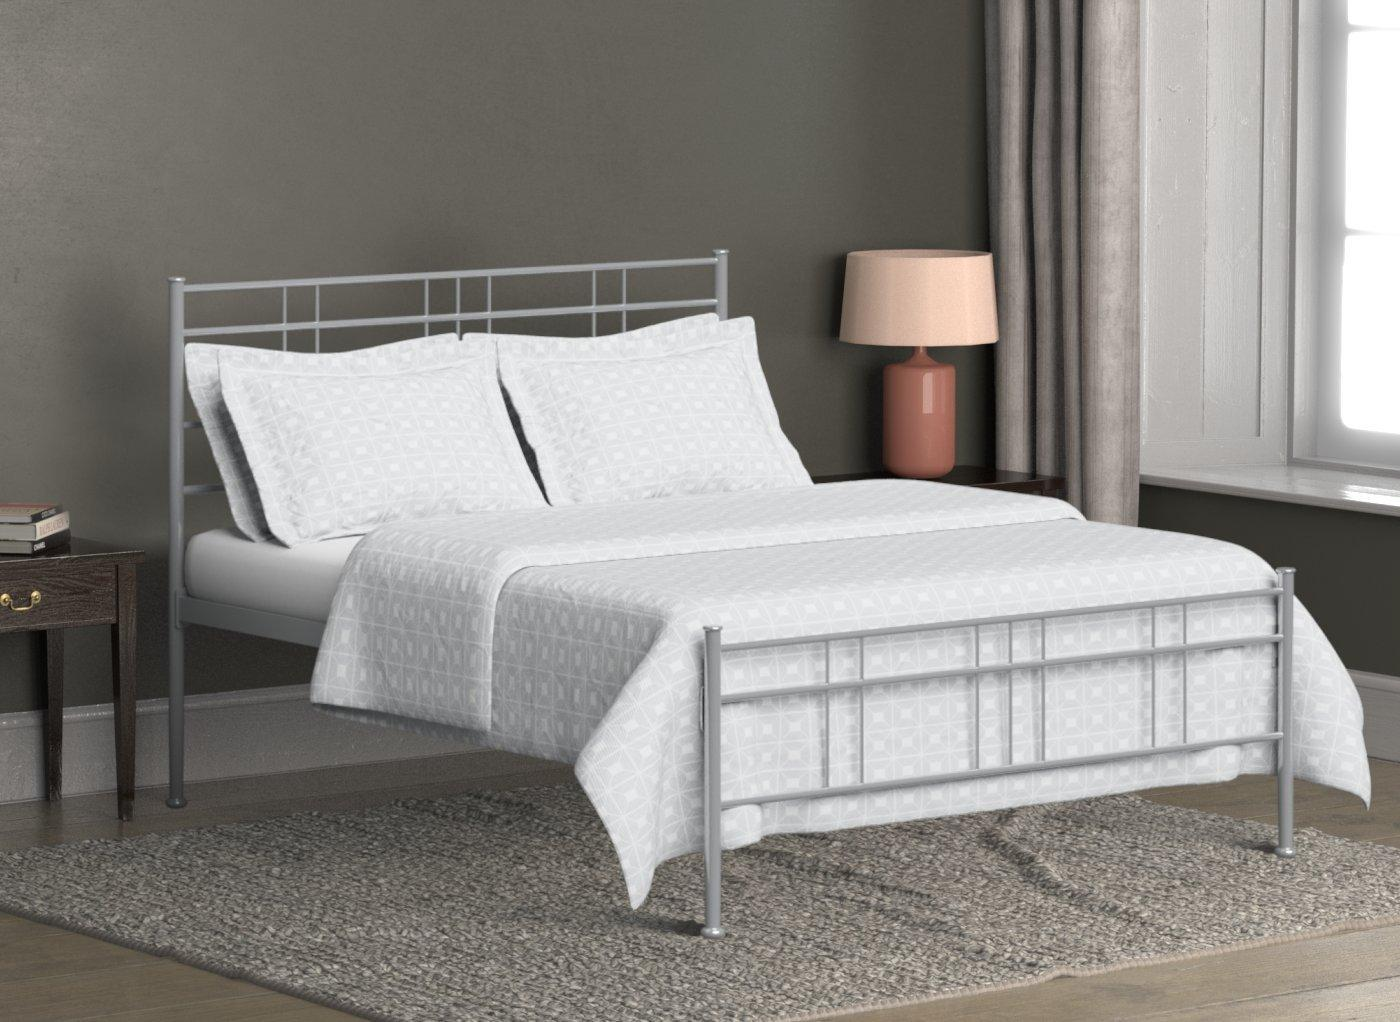 Milano Glossy Silver Metal Bed Frame 3'0 Single